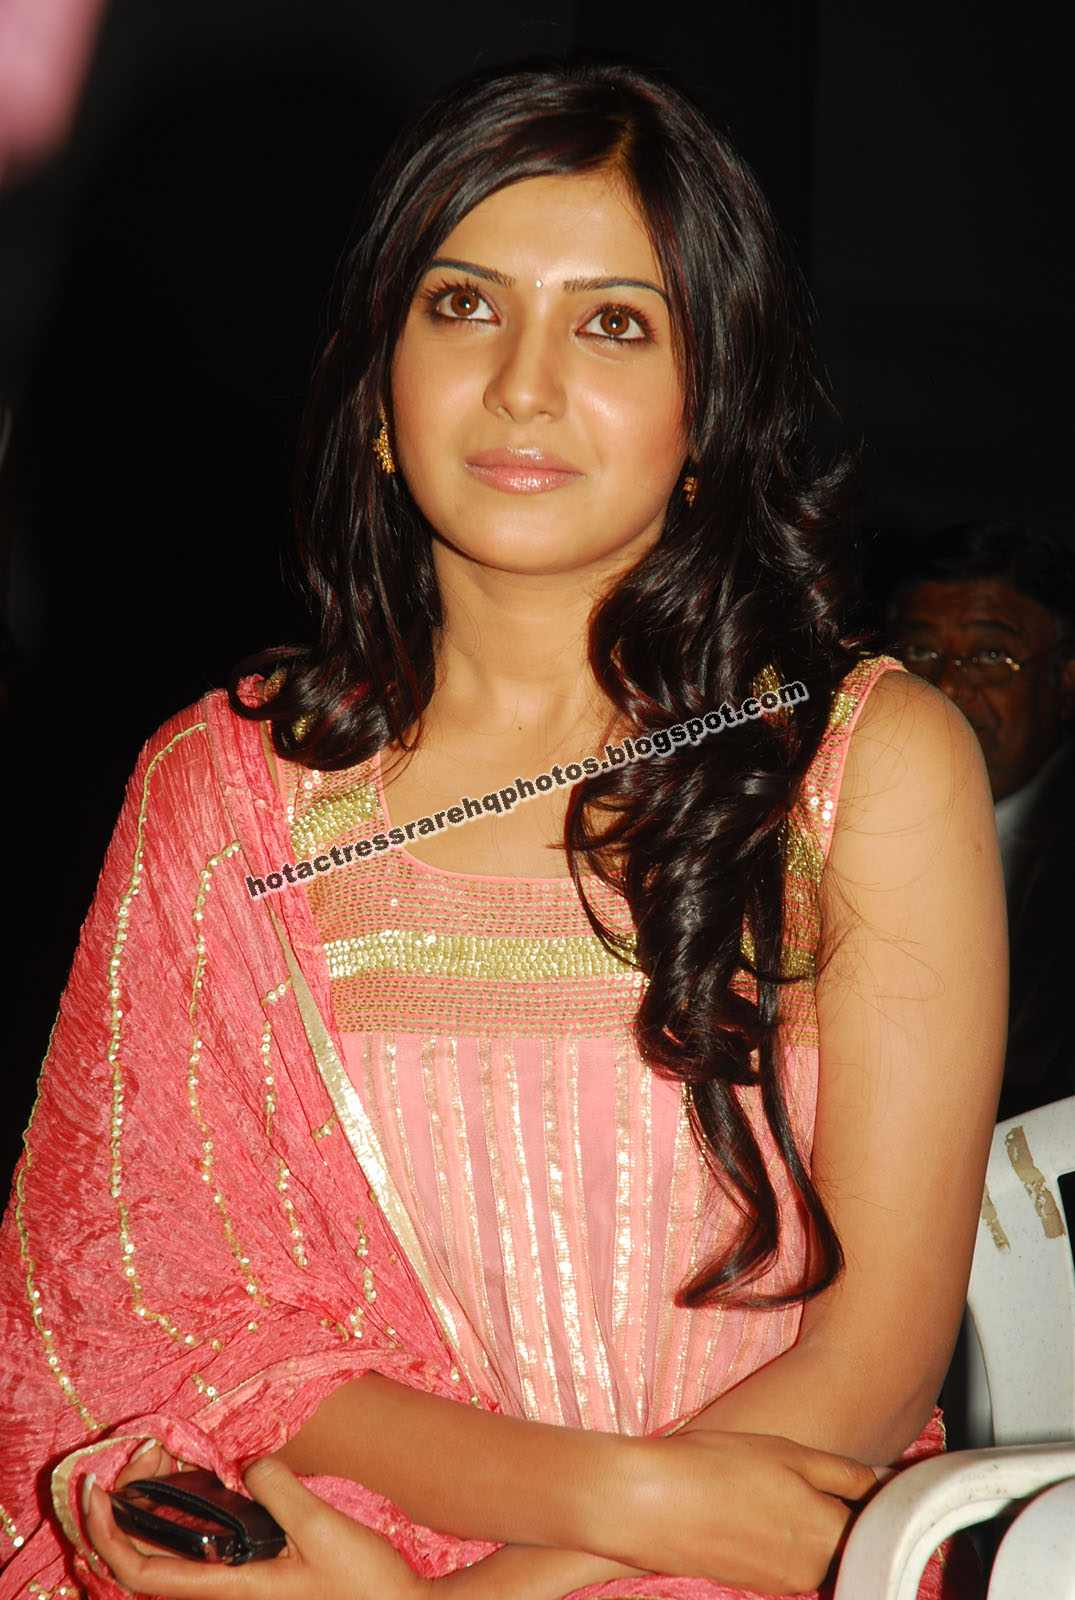 Was actress samantha ruth prabhu